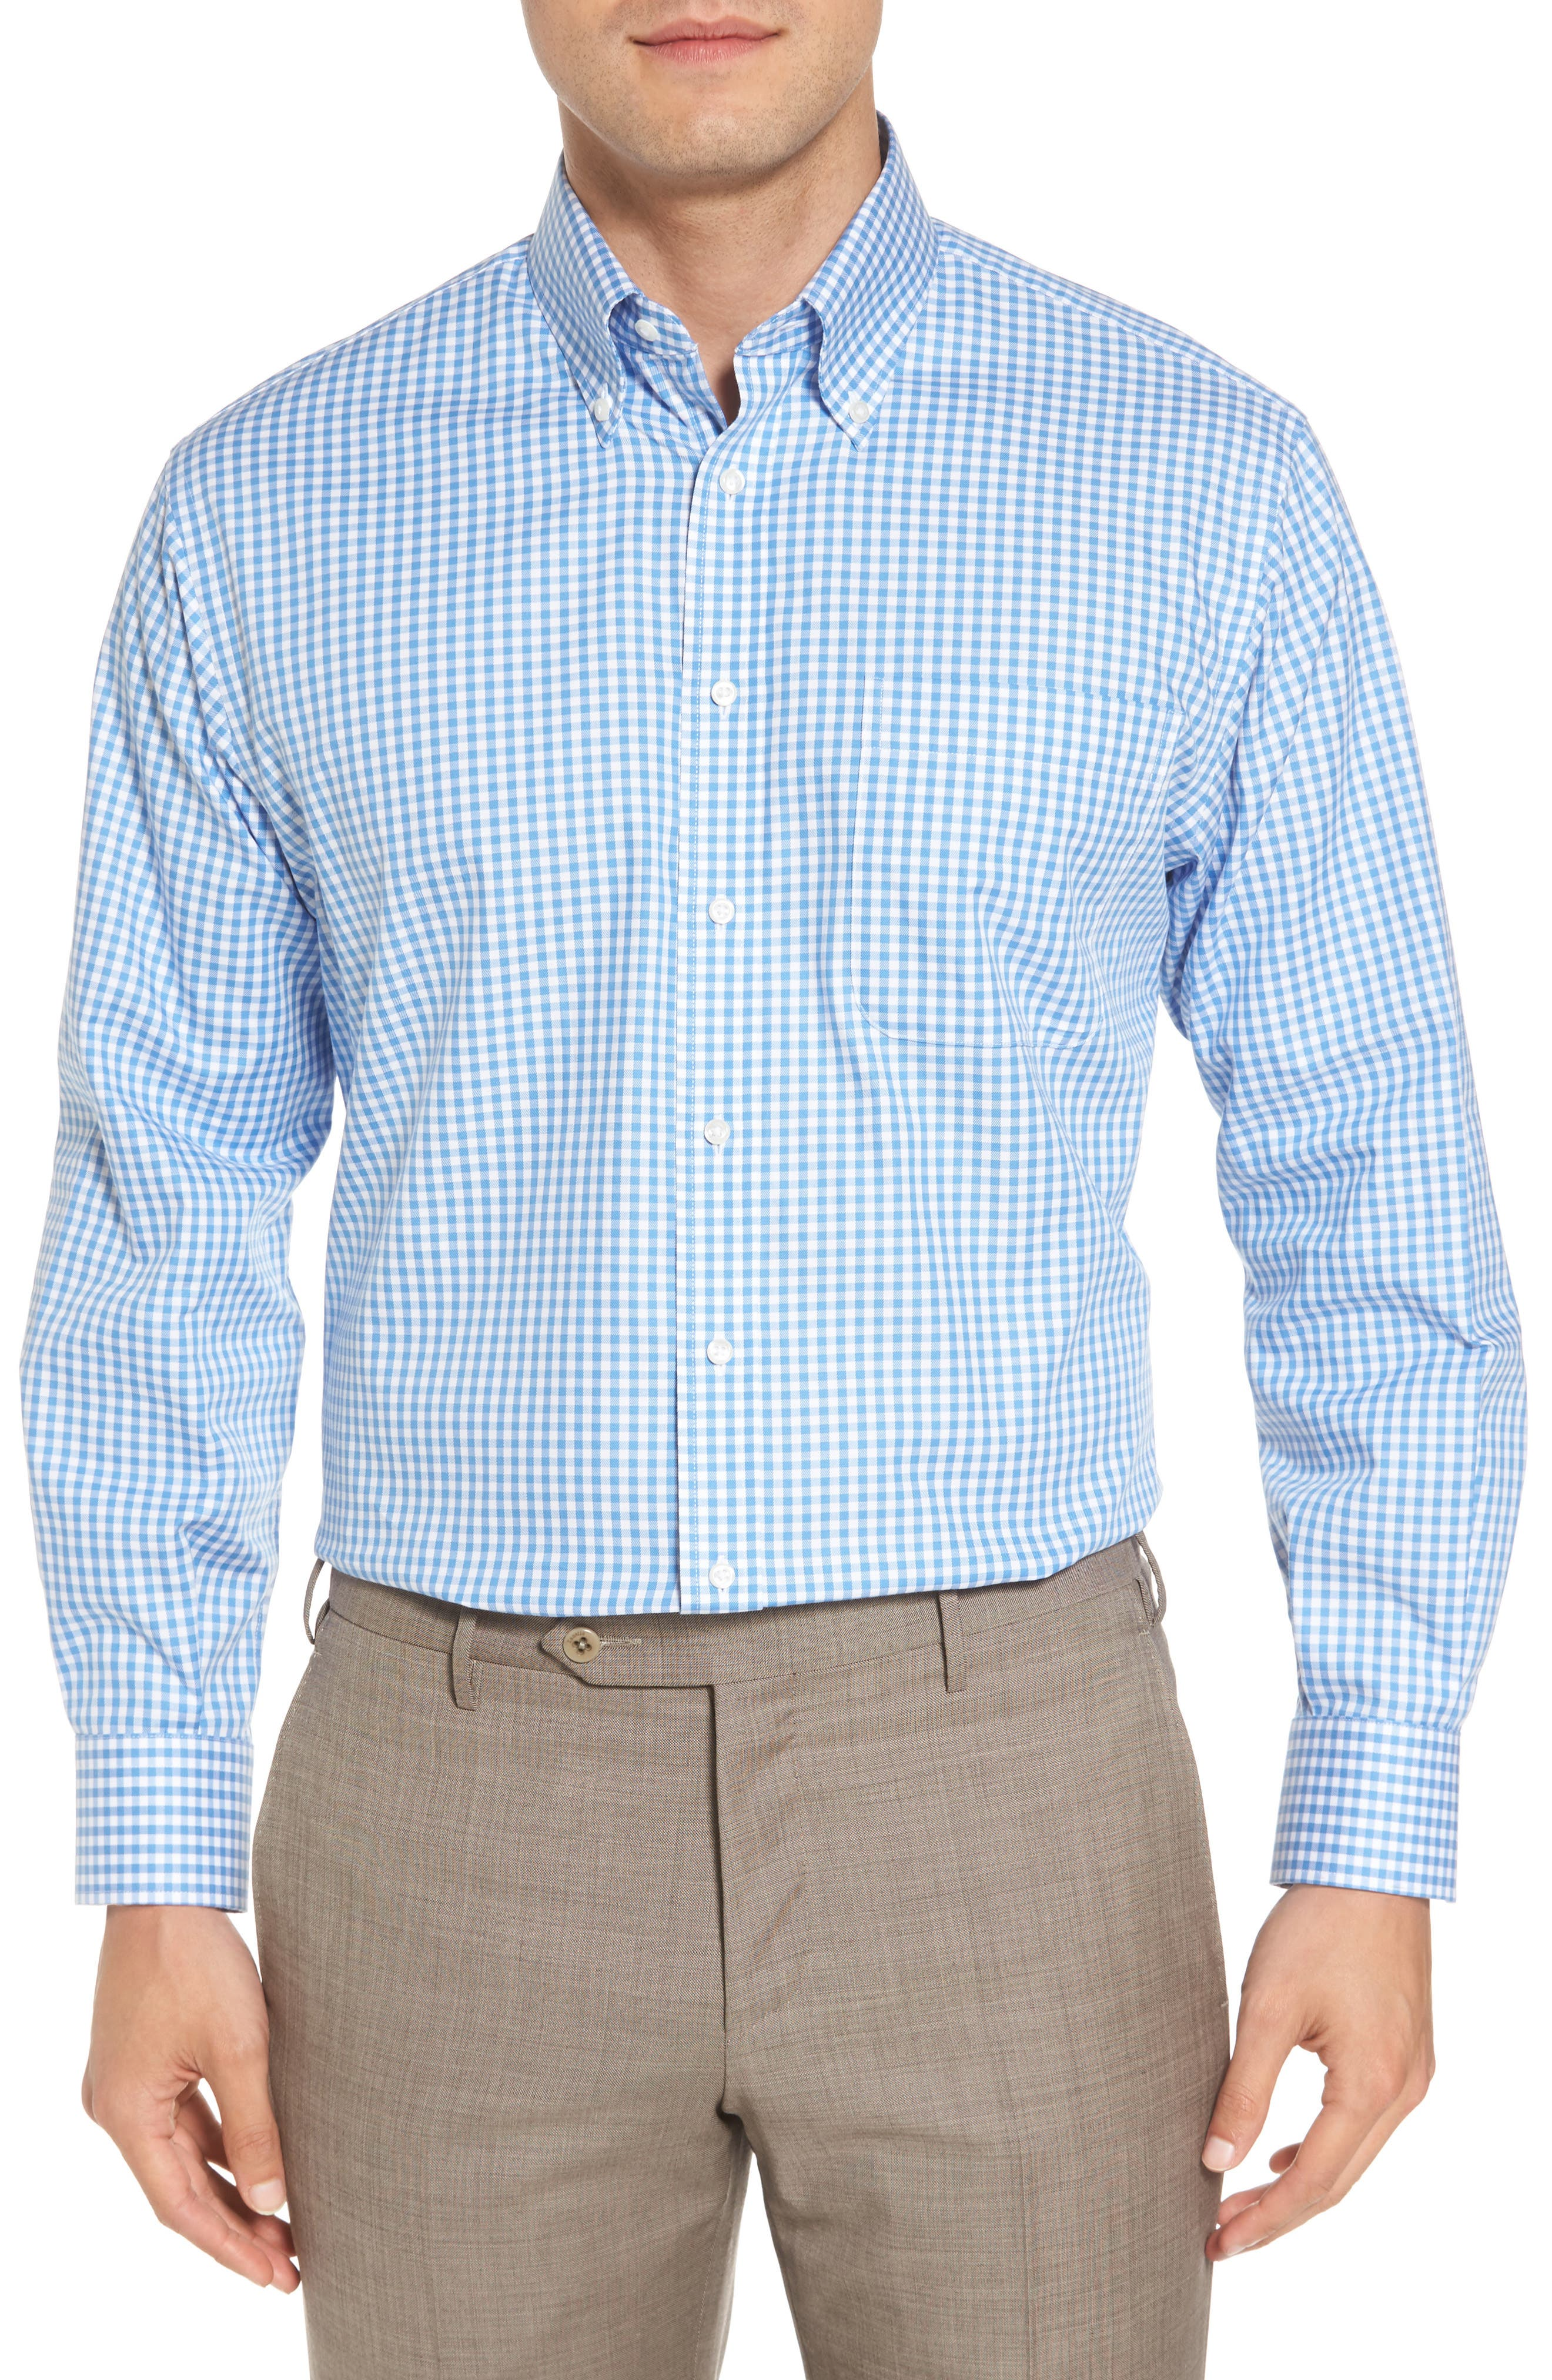 Buy Cheap Factory Outlet Manchester Great Sale Online Nordstrom Men's Shop Trim Fit Non-Iron Stripe Dress Shirt Free Shipping 2018 Store Sale Outlet Cost W0XlwakfC